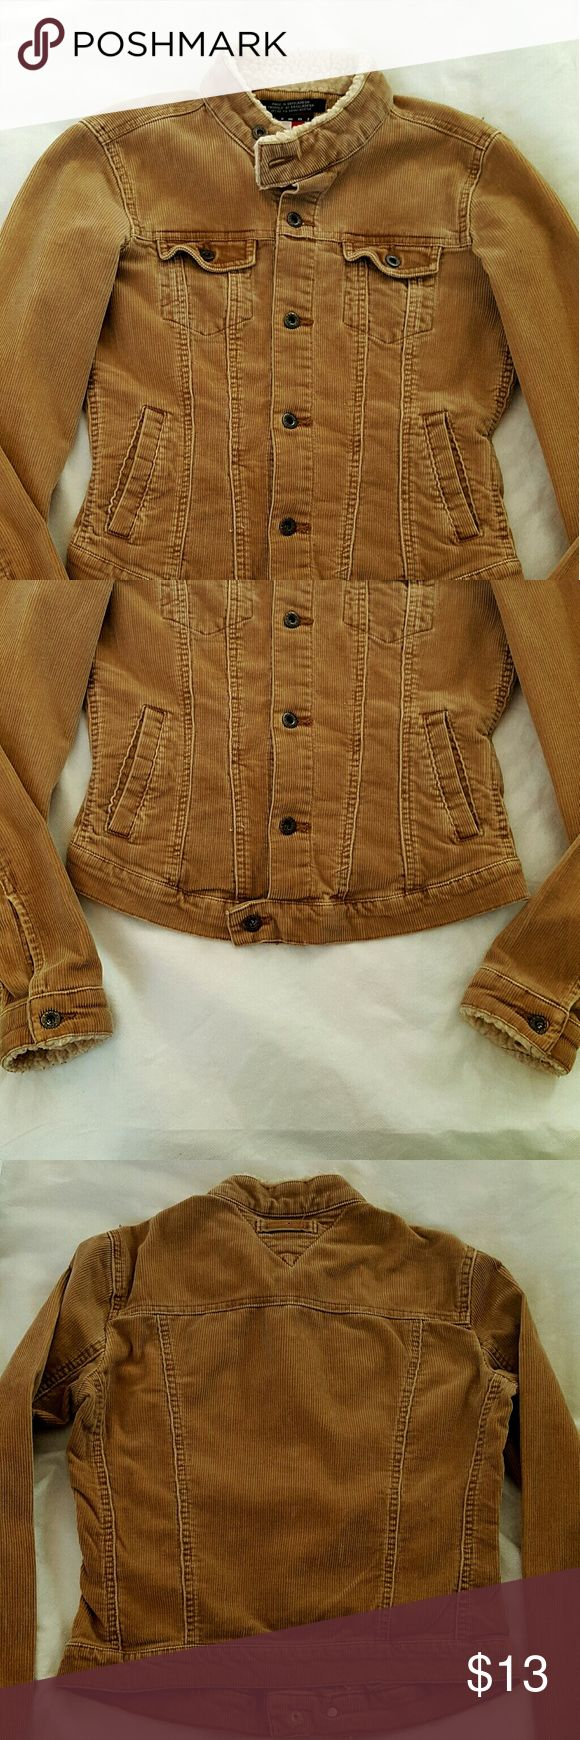 Tommy Jeans Jacket Tommy Jeans Jaket in very good condition. tommy jeans  Jackets & Coats